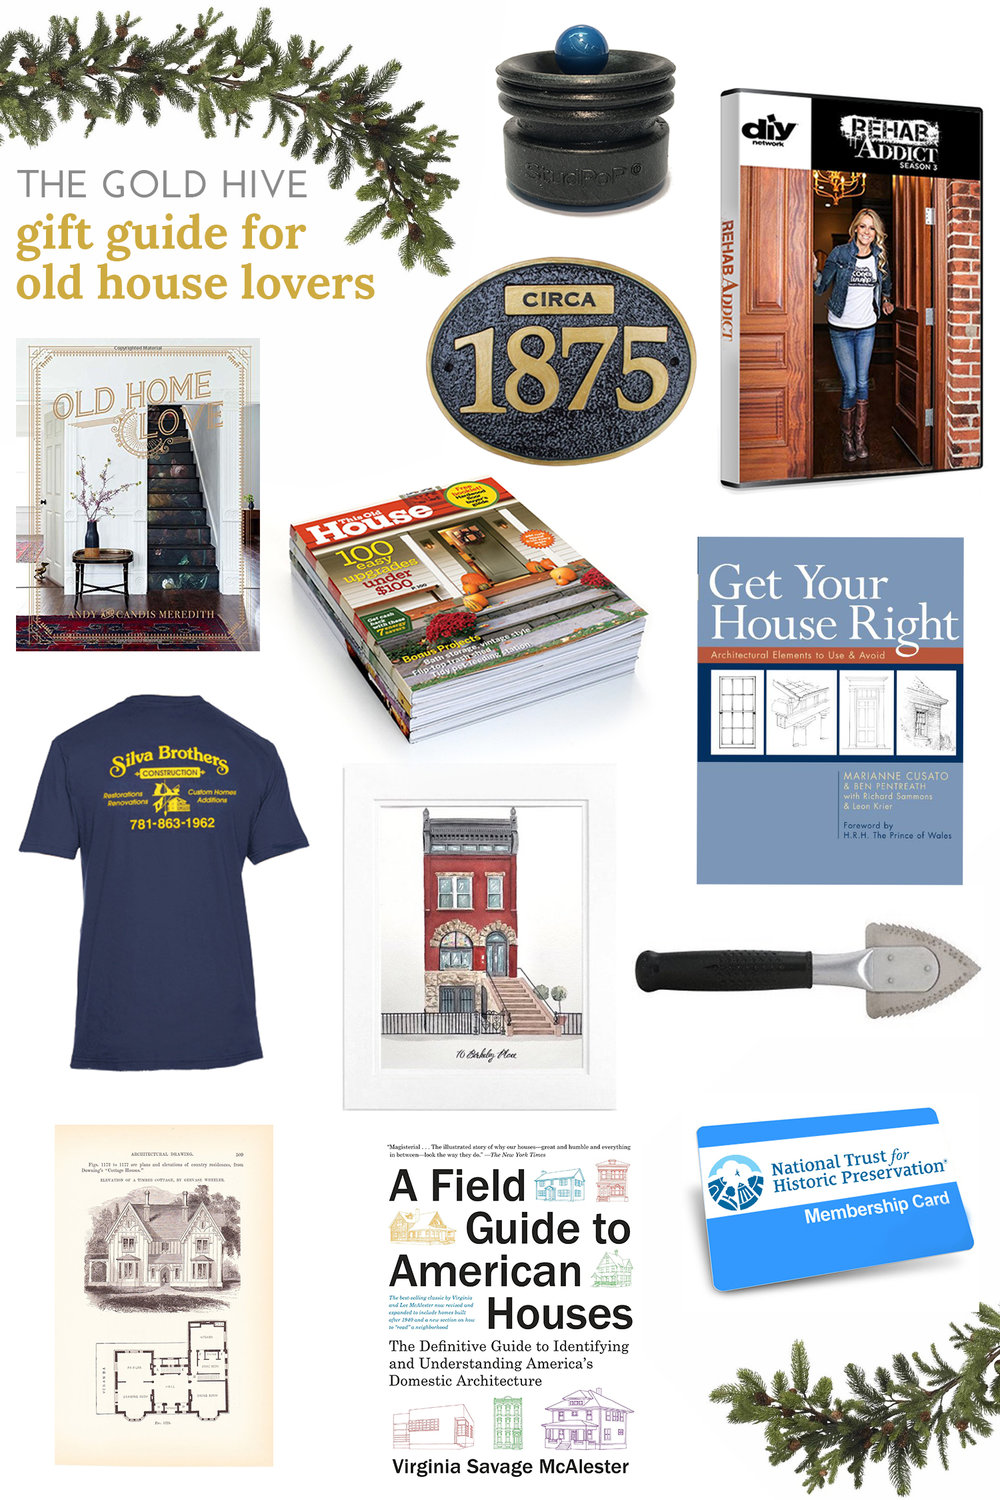 gift guide for old house lovers.jpg